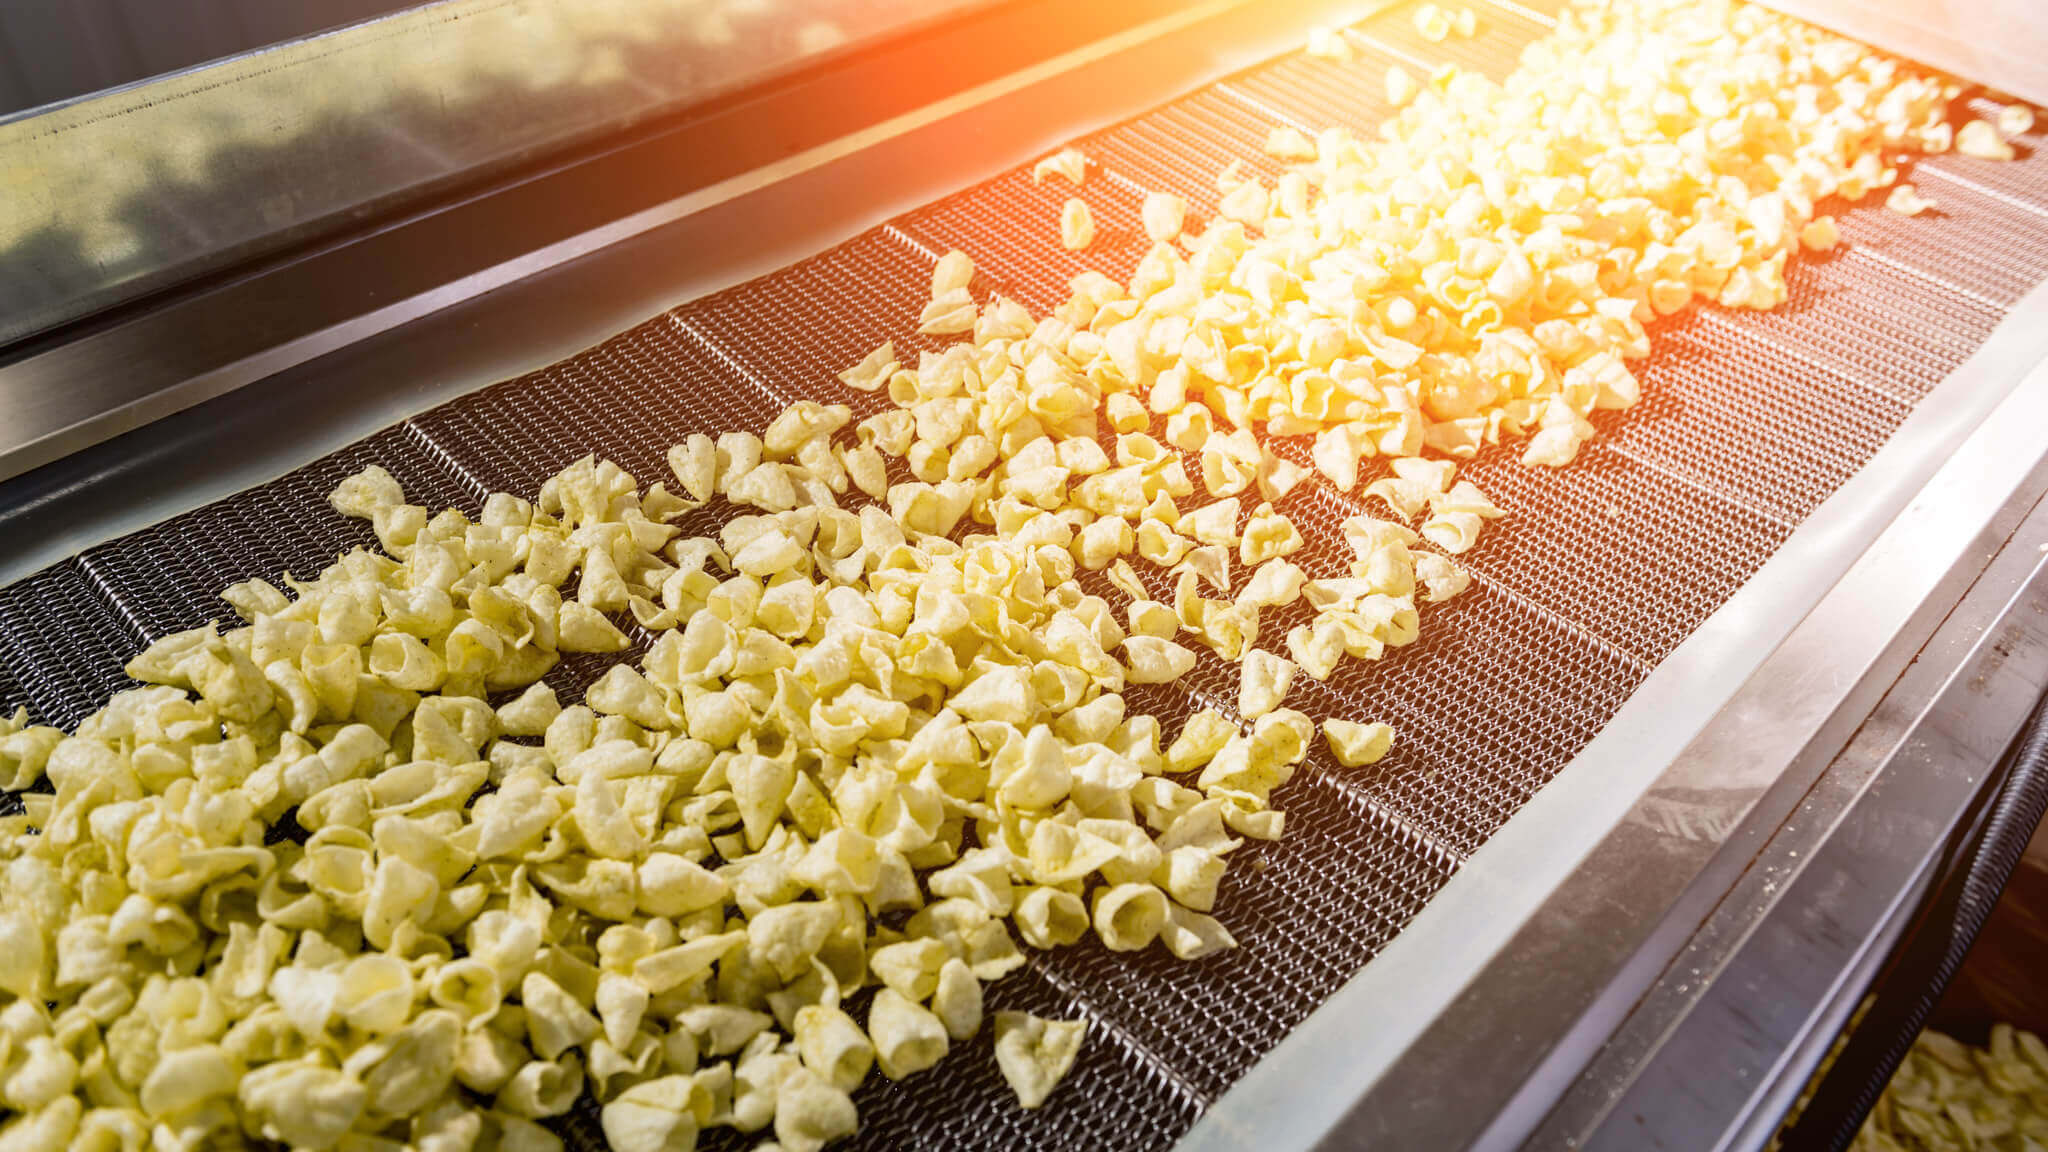 Considerations when Using NIR in a Snack Food Production Environment